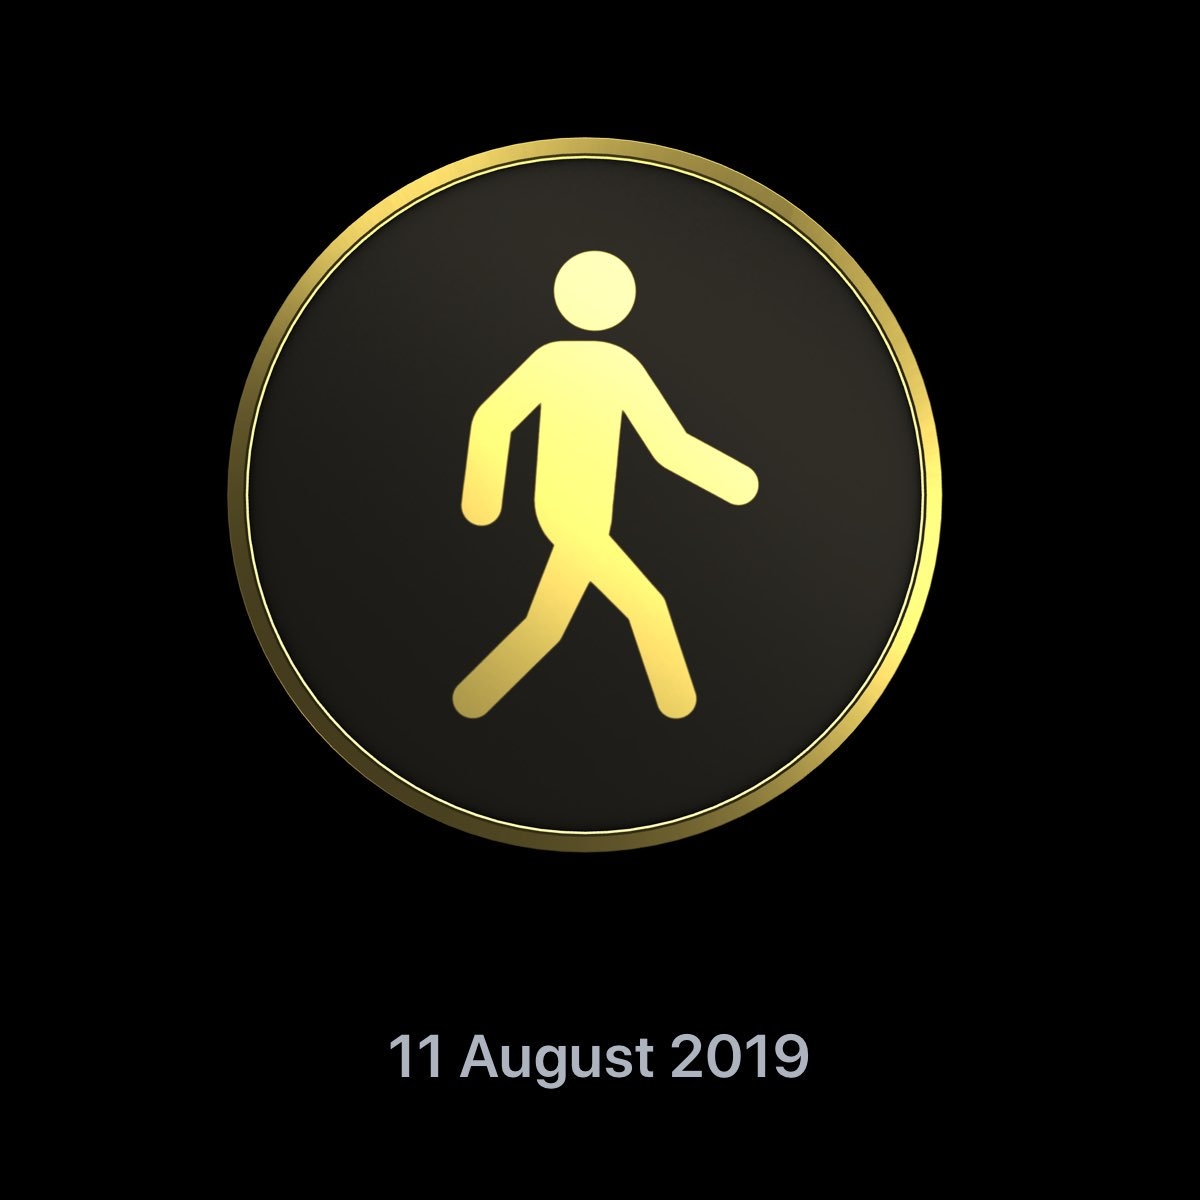 I set a personal record for Calories burned on a walk. #AppleWatch #AppleWatchSeries4 <br>http://pic.twitter.com/2XITGij2X3